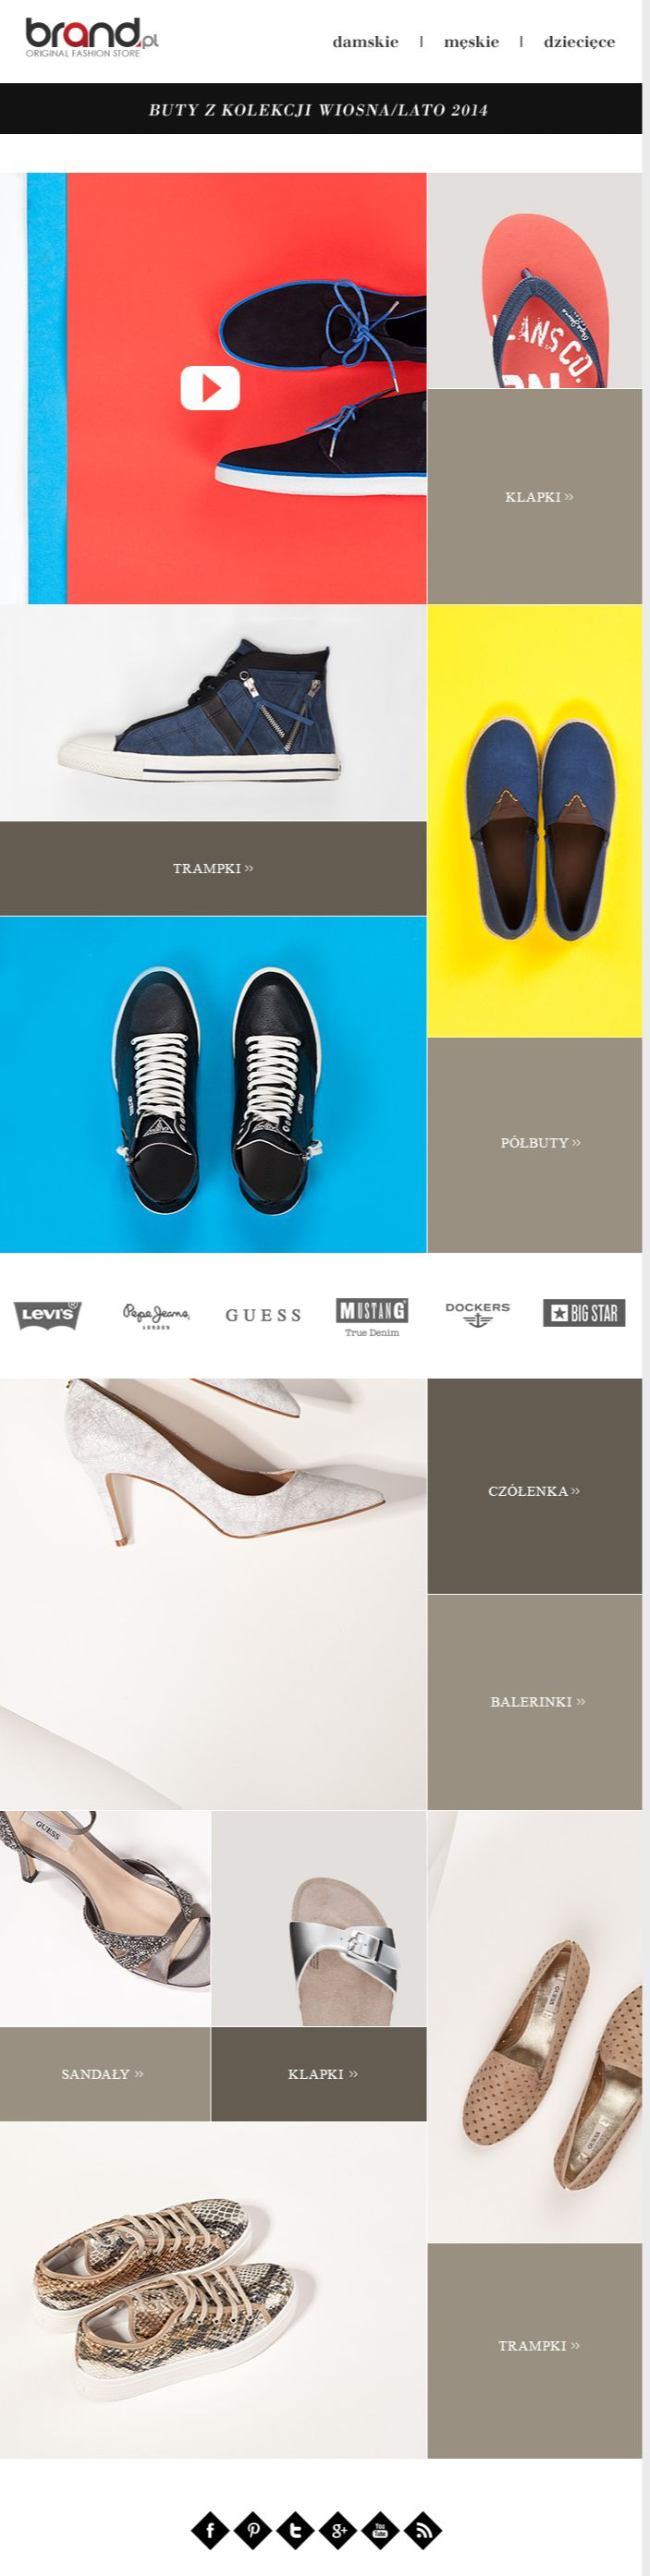 Brand.pl shoes newsletter, email design www.datemailman.com